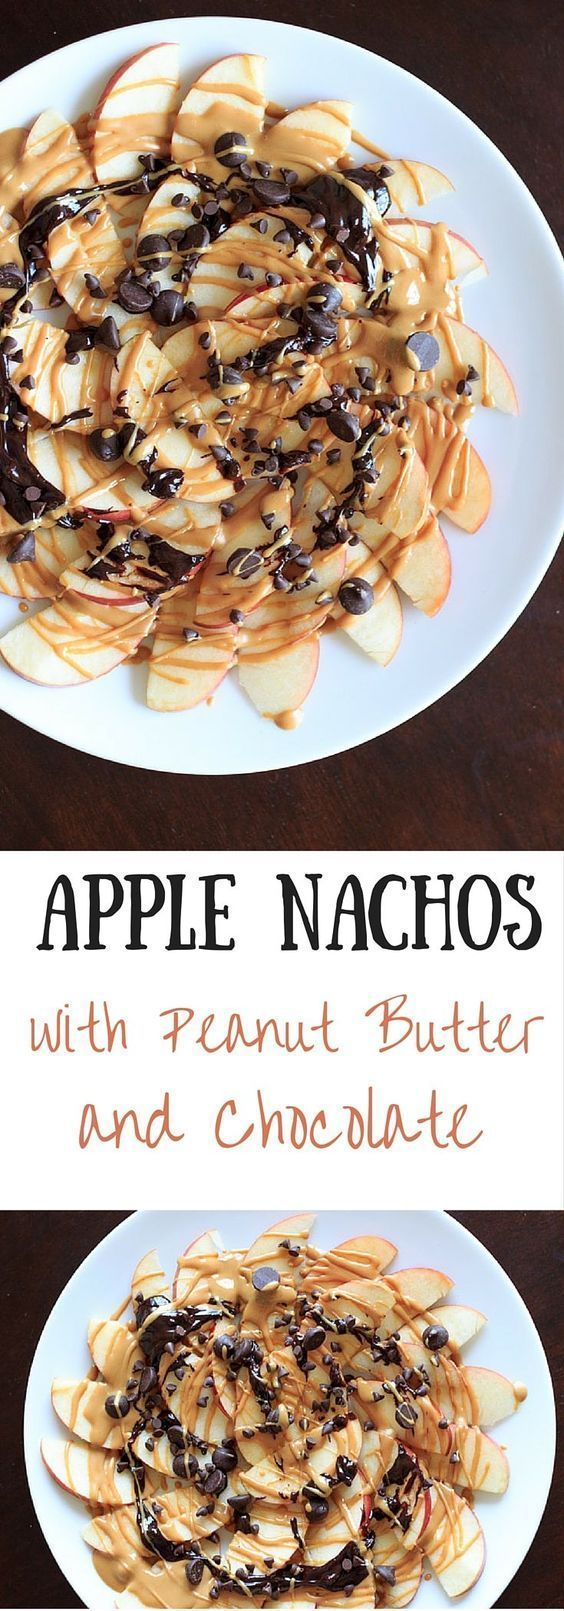 Apple nachos with peanut butter and chocolate - 5 minutes, vegan, gluten-free, delicious